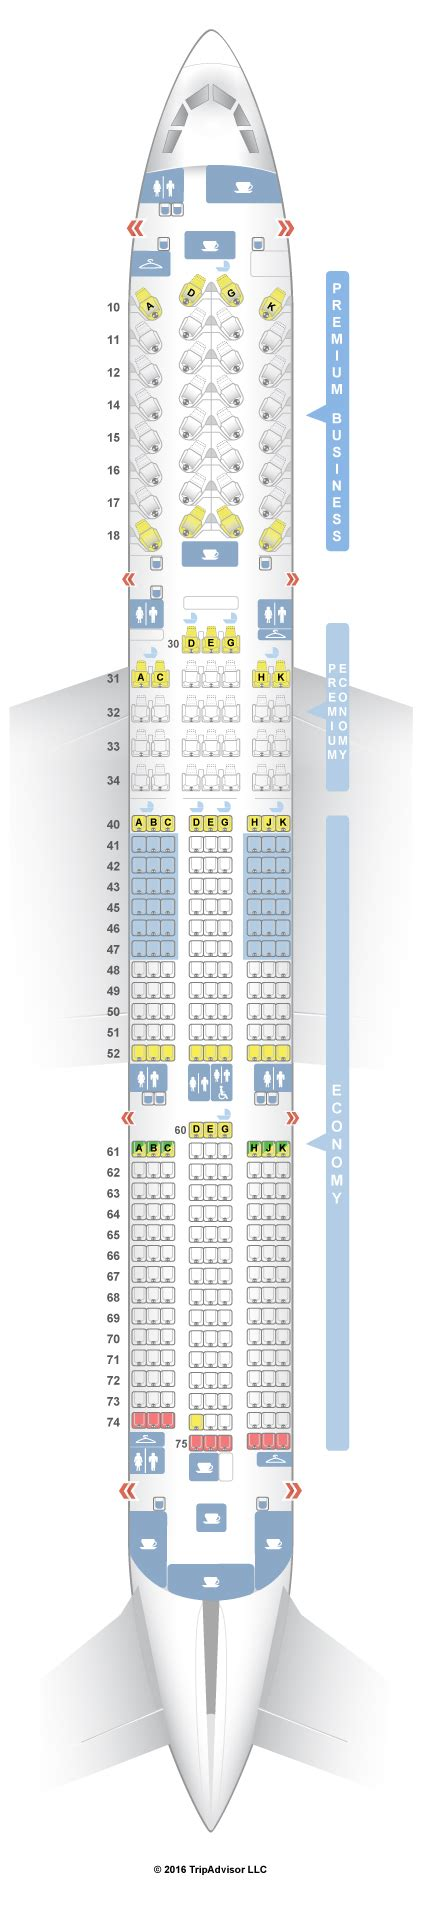 SeatGuru Seat Map China Airlines